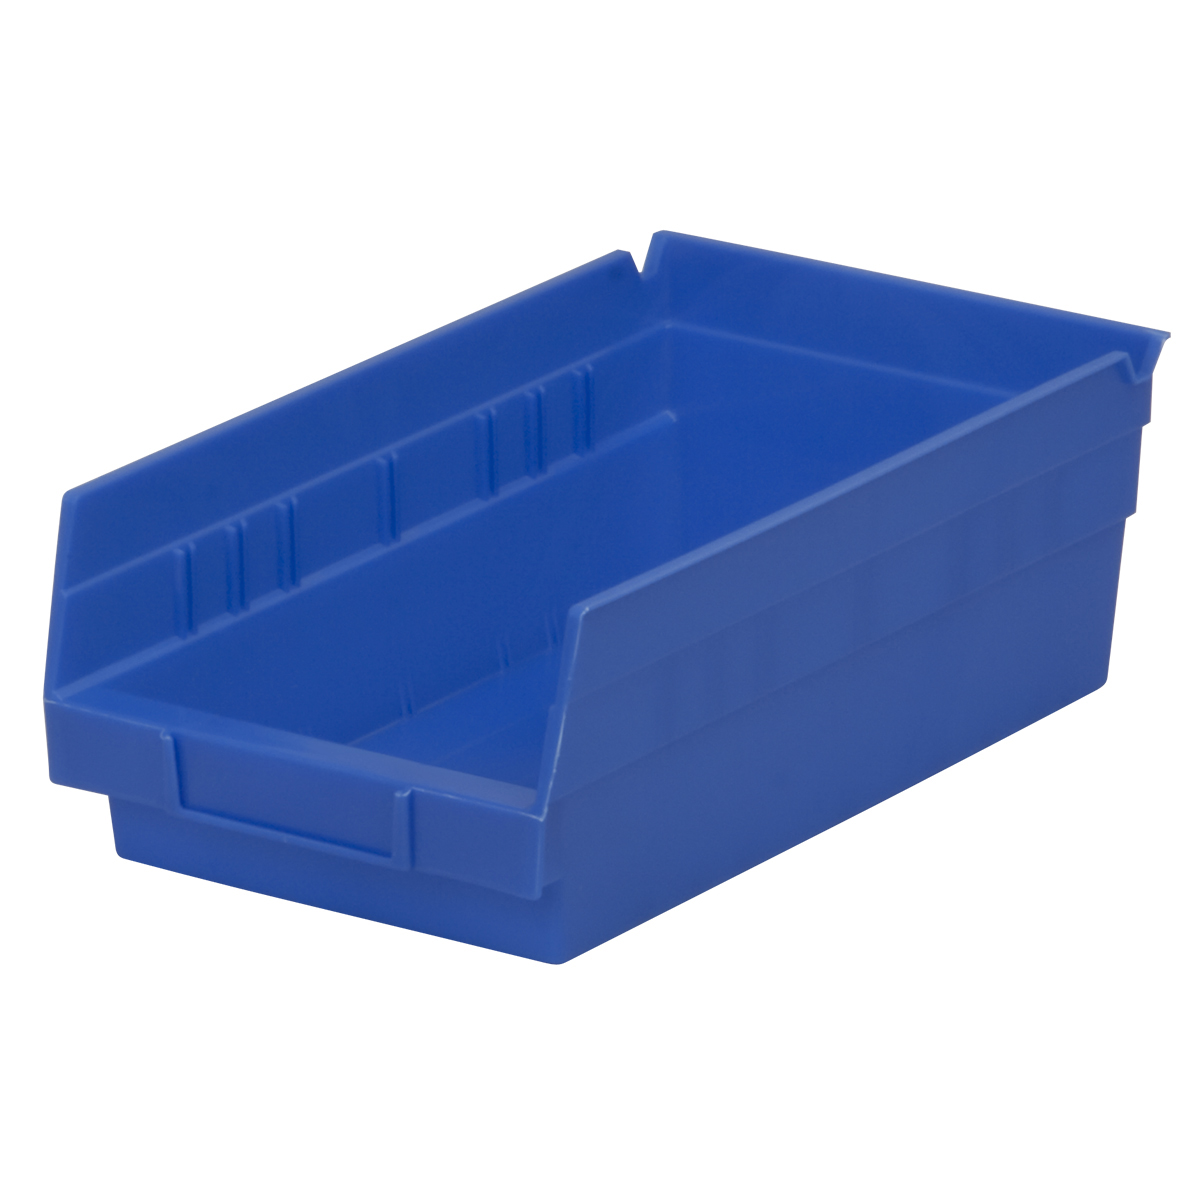 Shelf Bin 11-5/8 x 6-5/8 x 4, Blue (30130BLUE).  This item sold in carton quantities of 12.